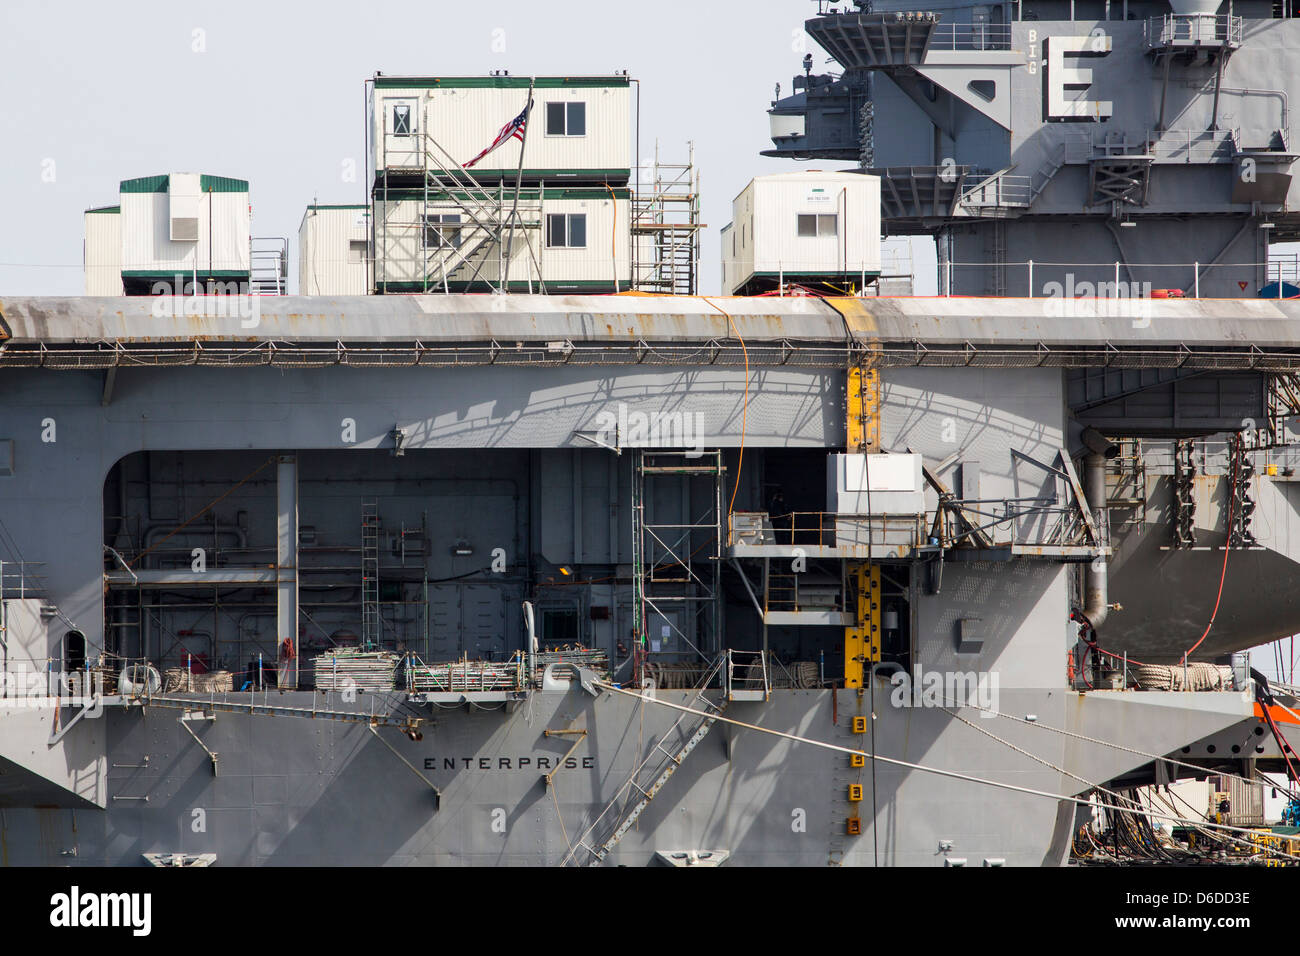 The aircraft carrier USS Enterprise (CVN-65) at Naval Station Norfolk. - Stock Image